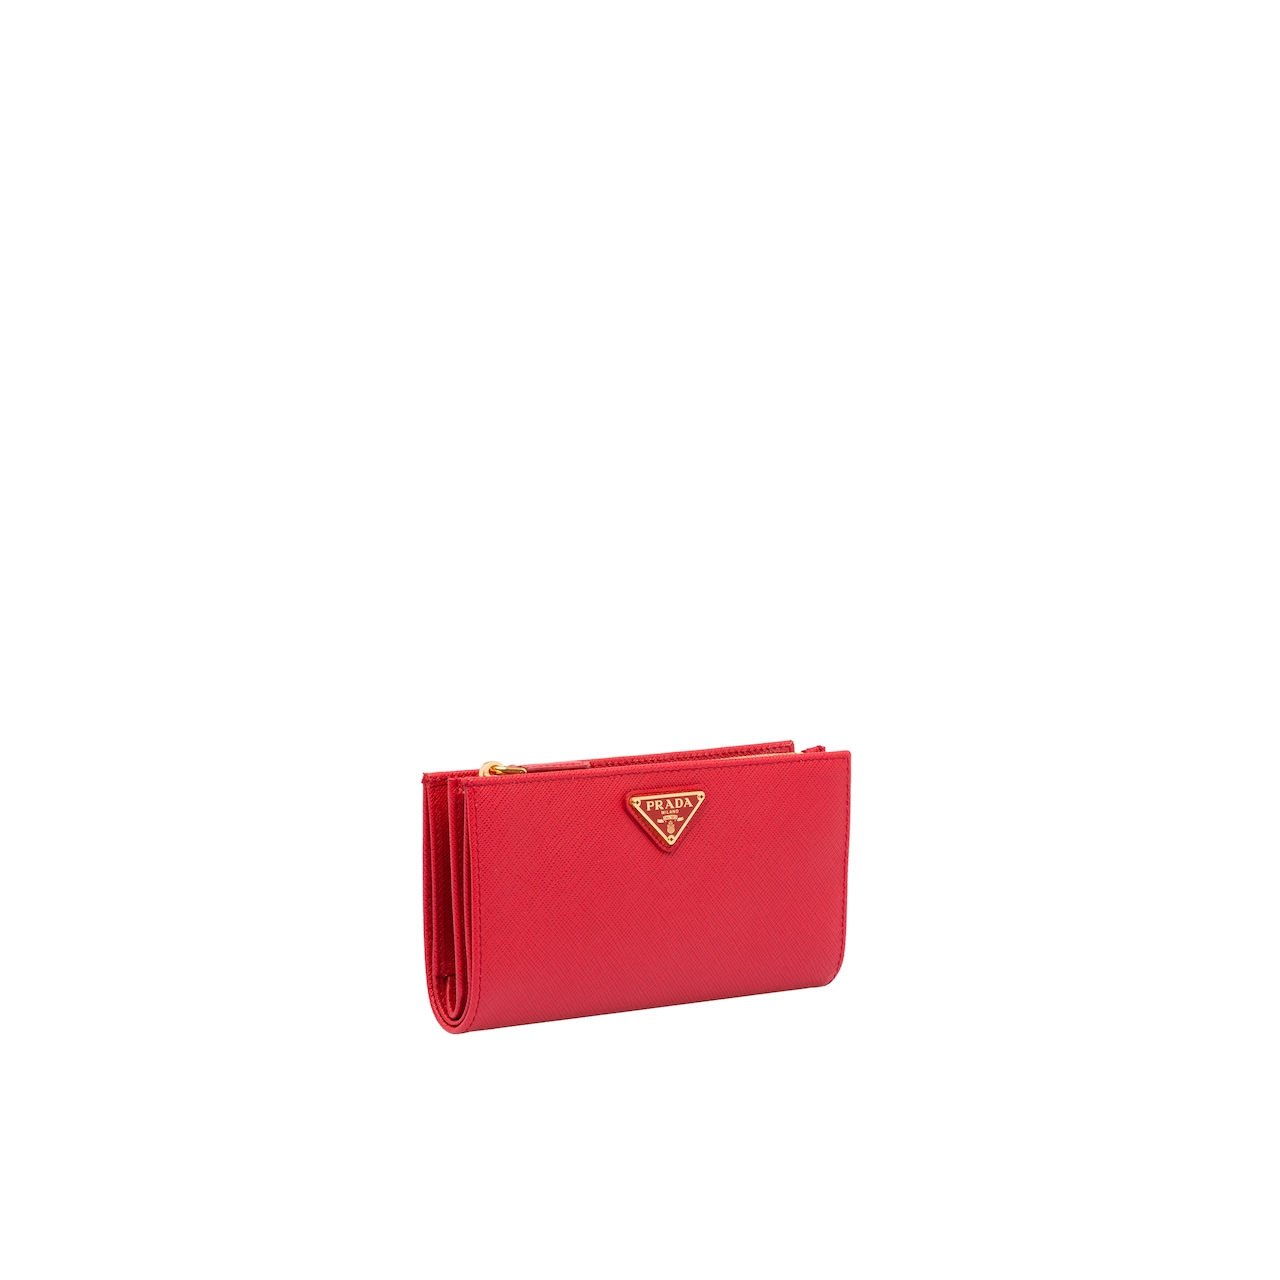 Saffiano leather wallet 4